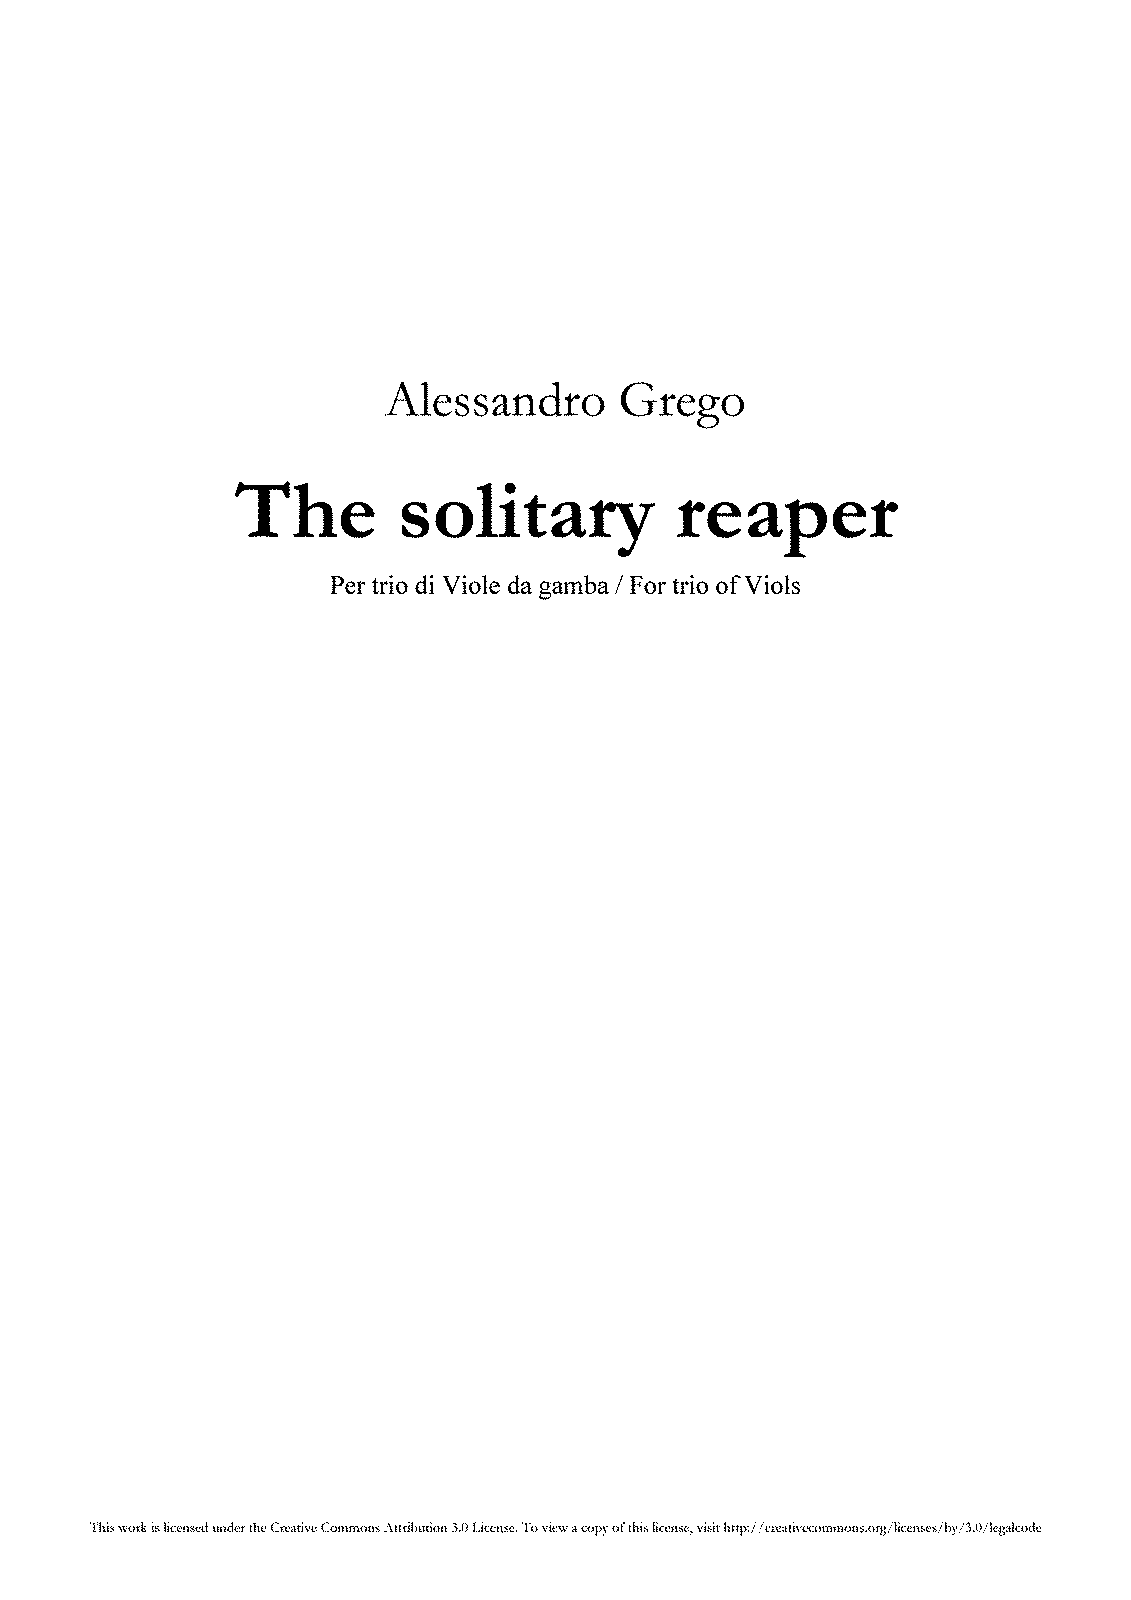 PMLP46508-The solitary reaper.pdf